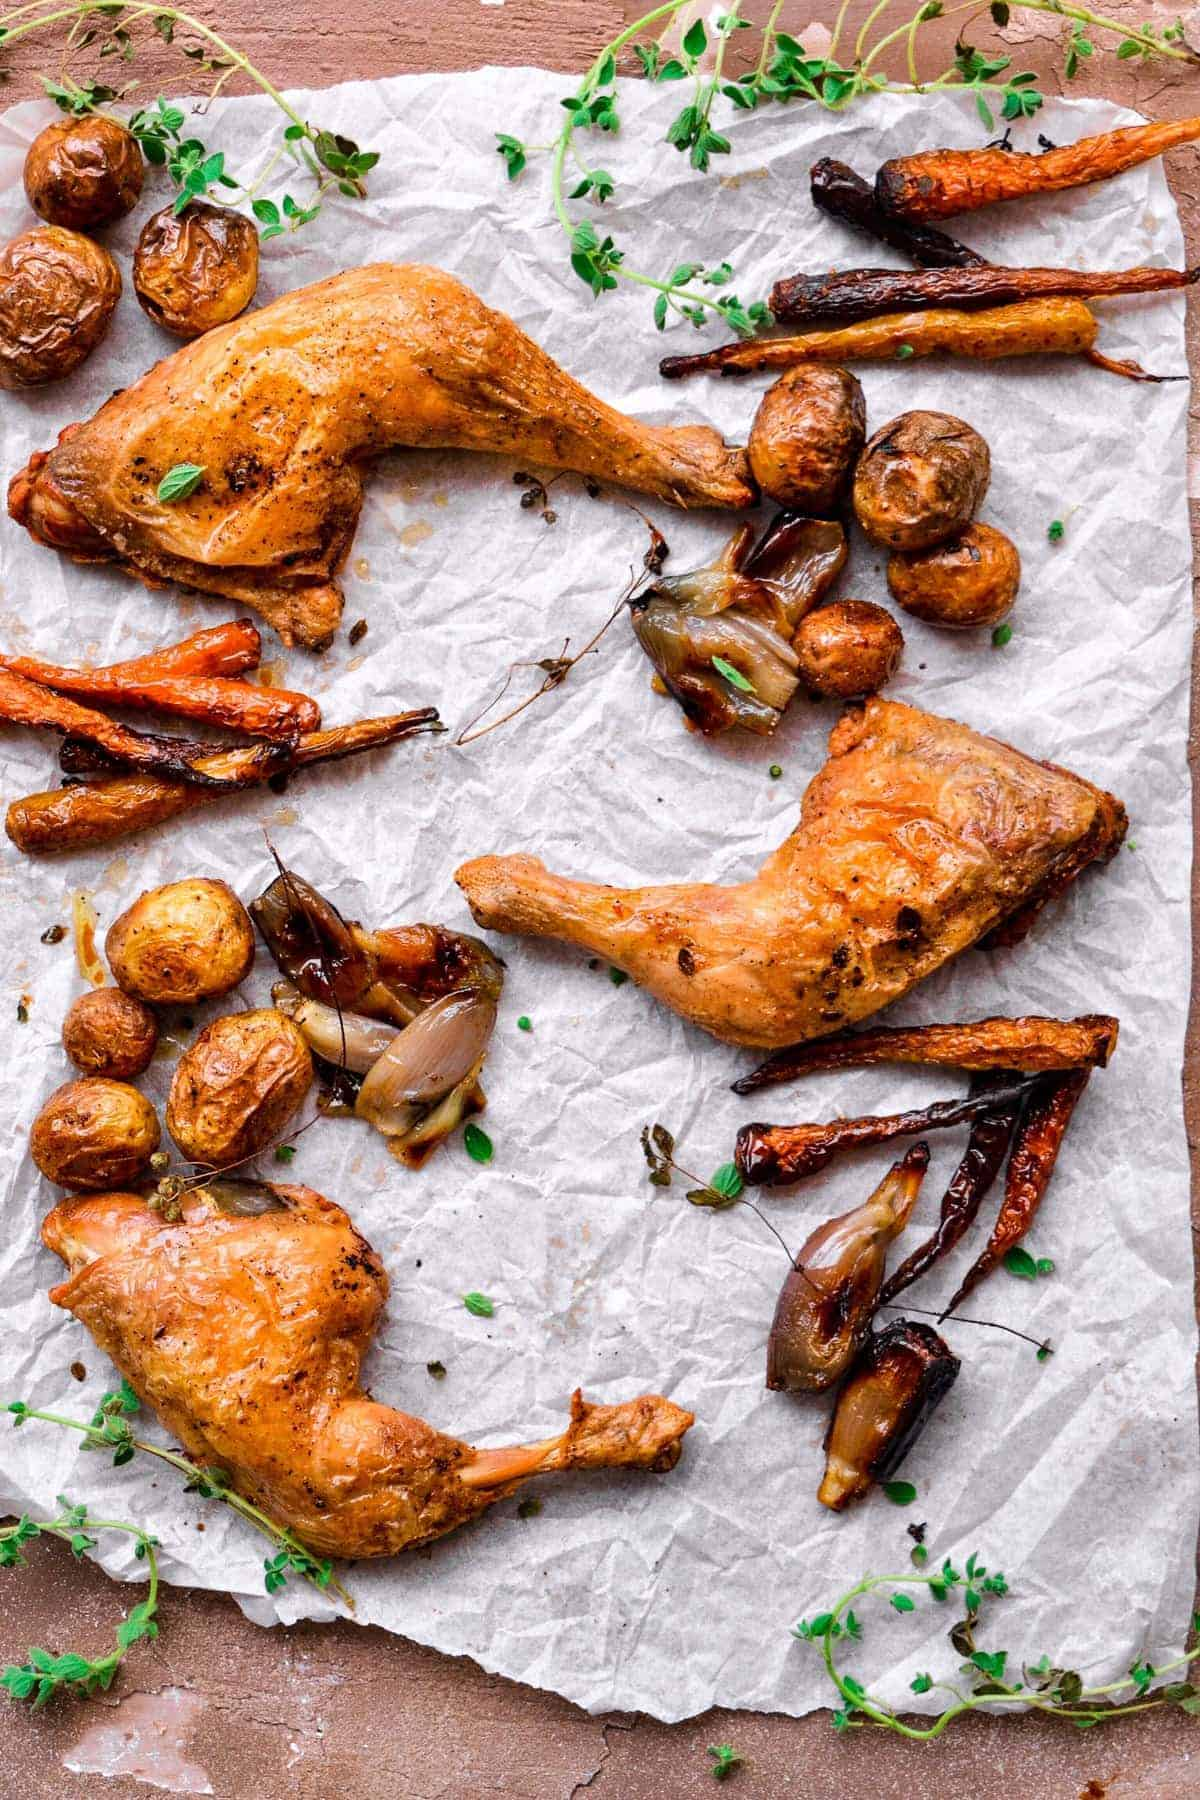 Baked Chicken and Potatoes sheet pan meal on parchment paper with fresh herbs